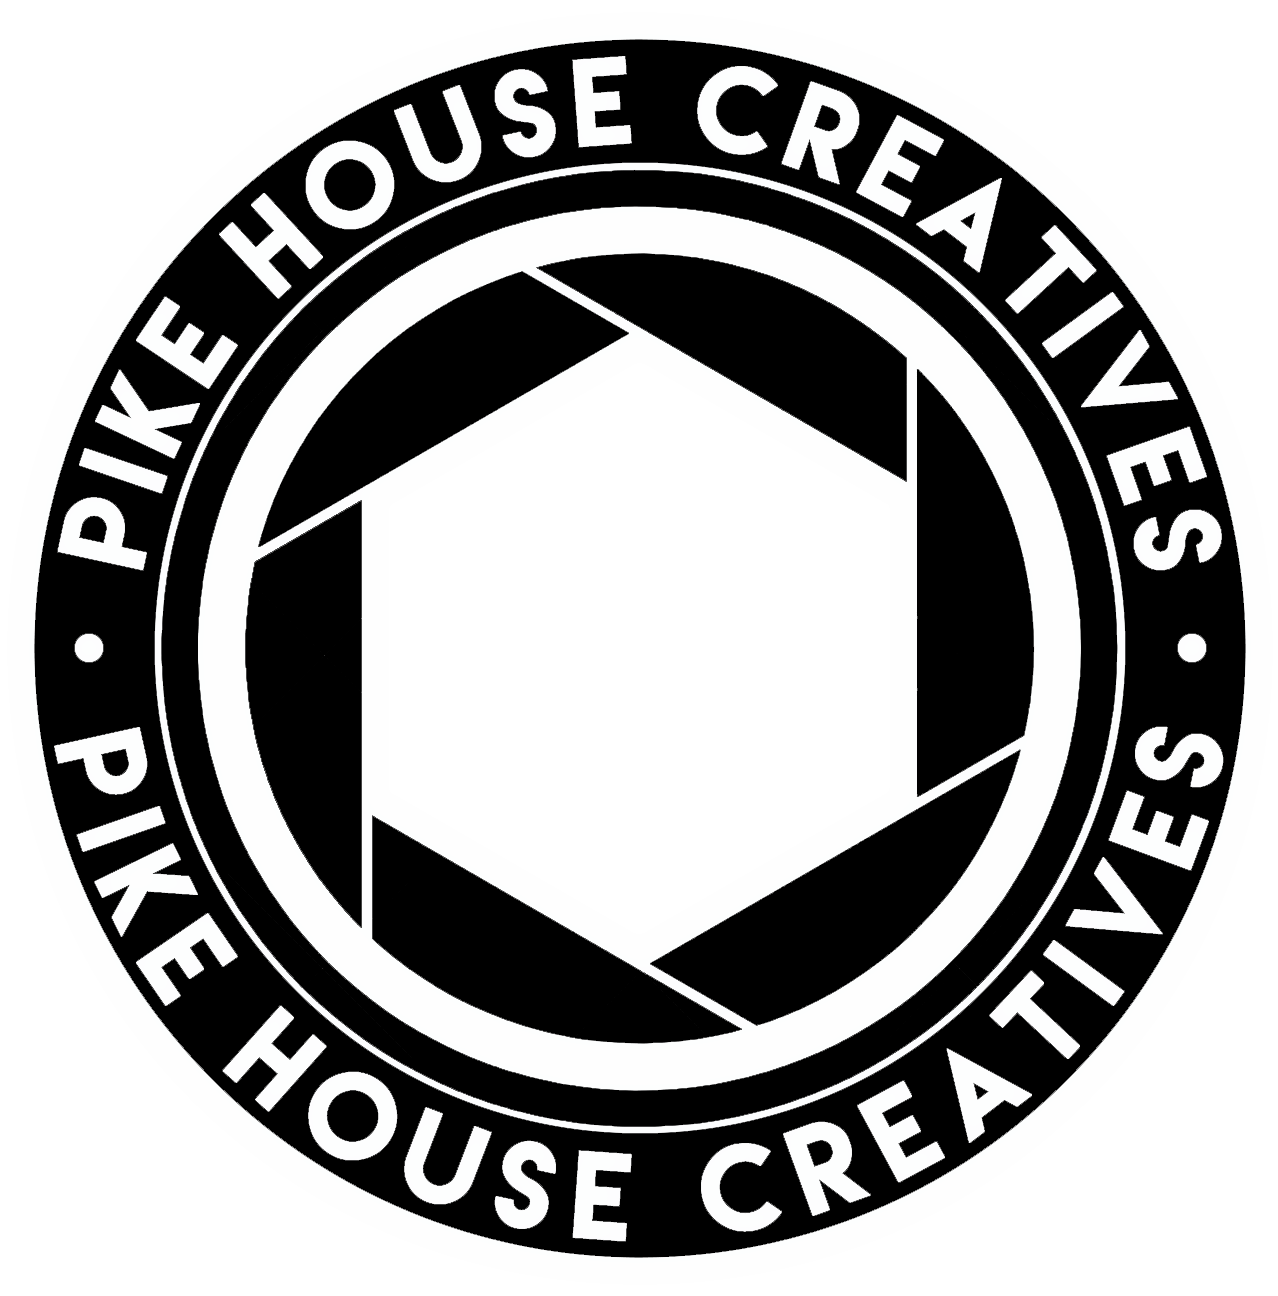 PIKE HOUSE CREATIVES